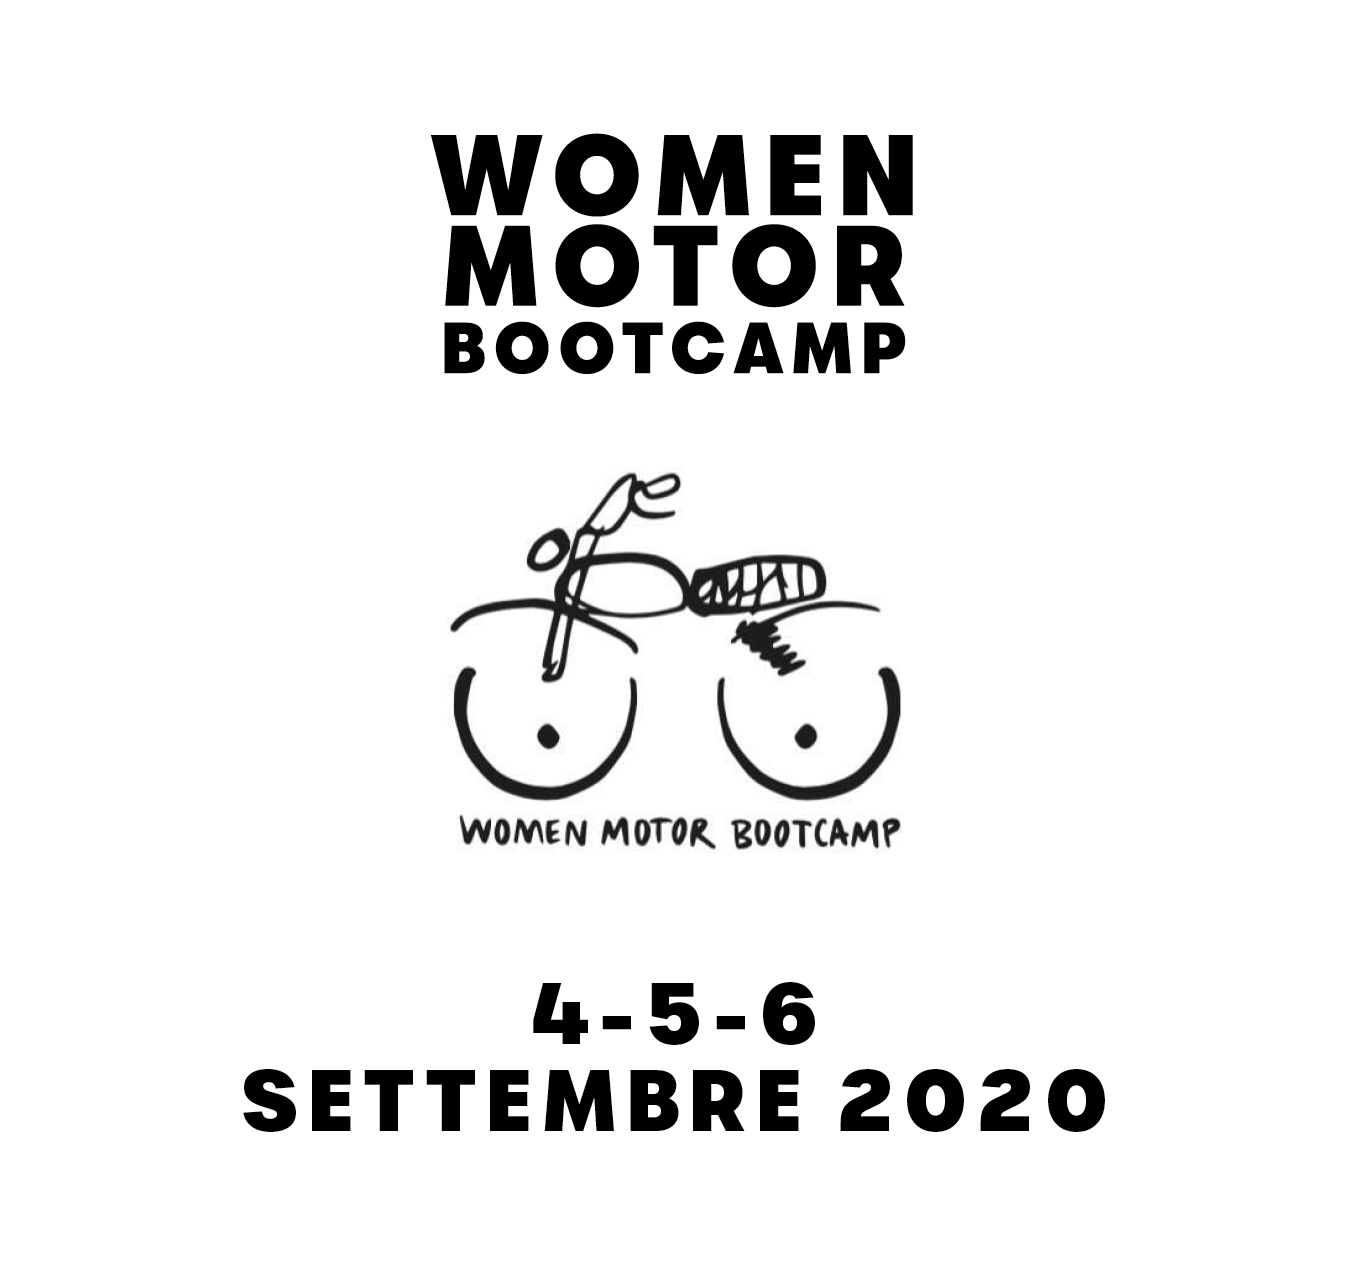 WMBootcamp 2020: testimonial d'eccezione e motorcycle boots Stylmartin